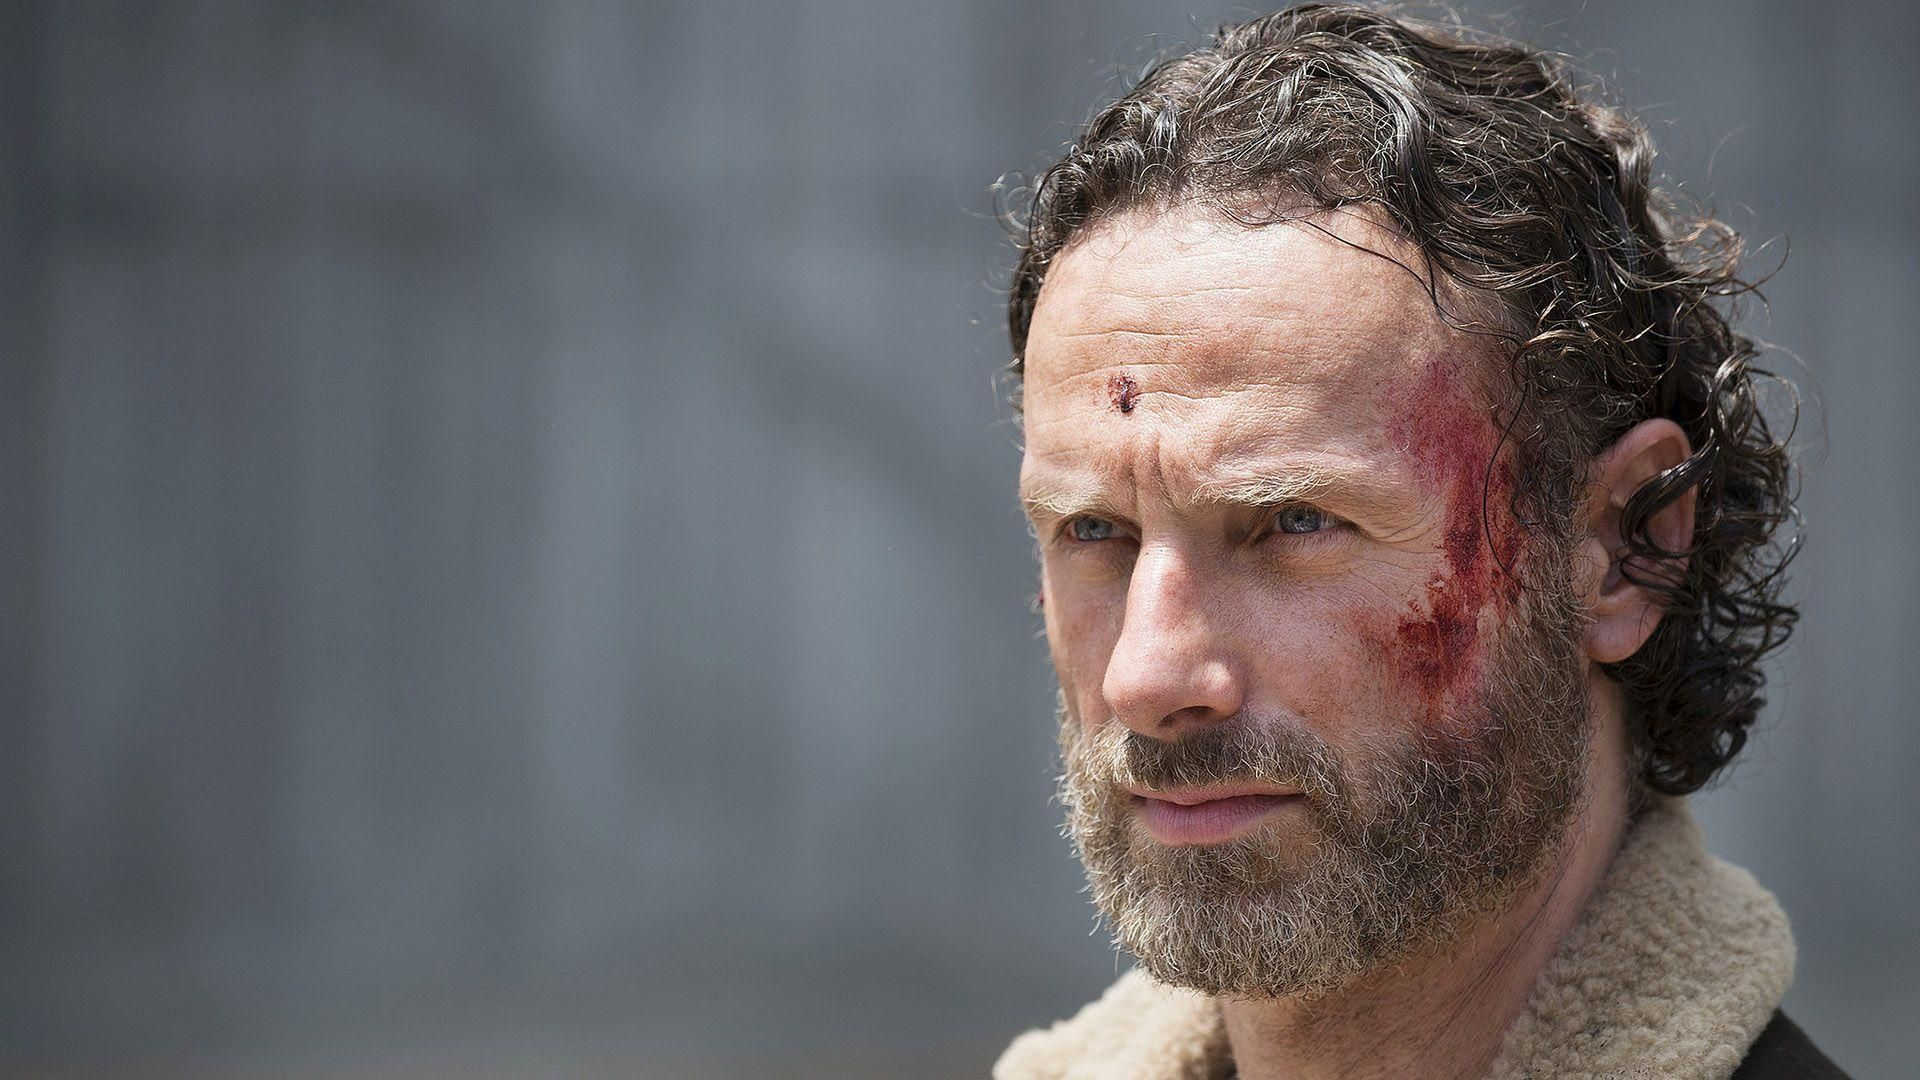 andrew-lincoln-as-rick-grimes-in-the-walking-dead